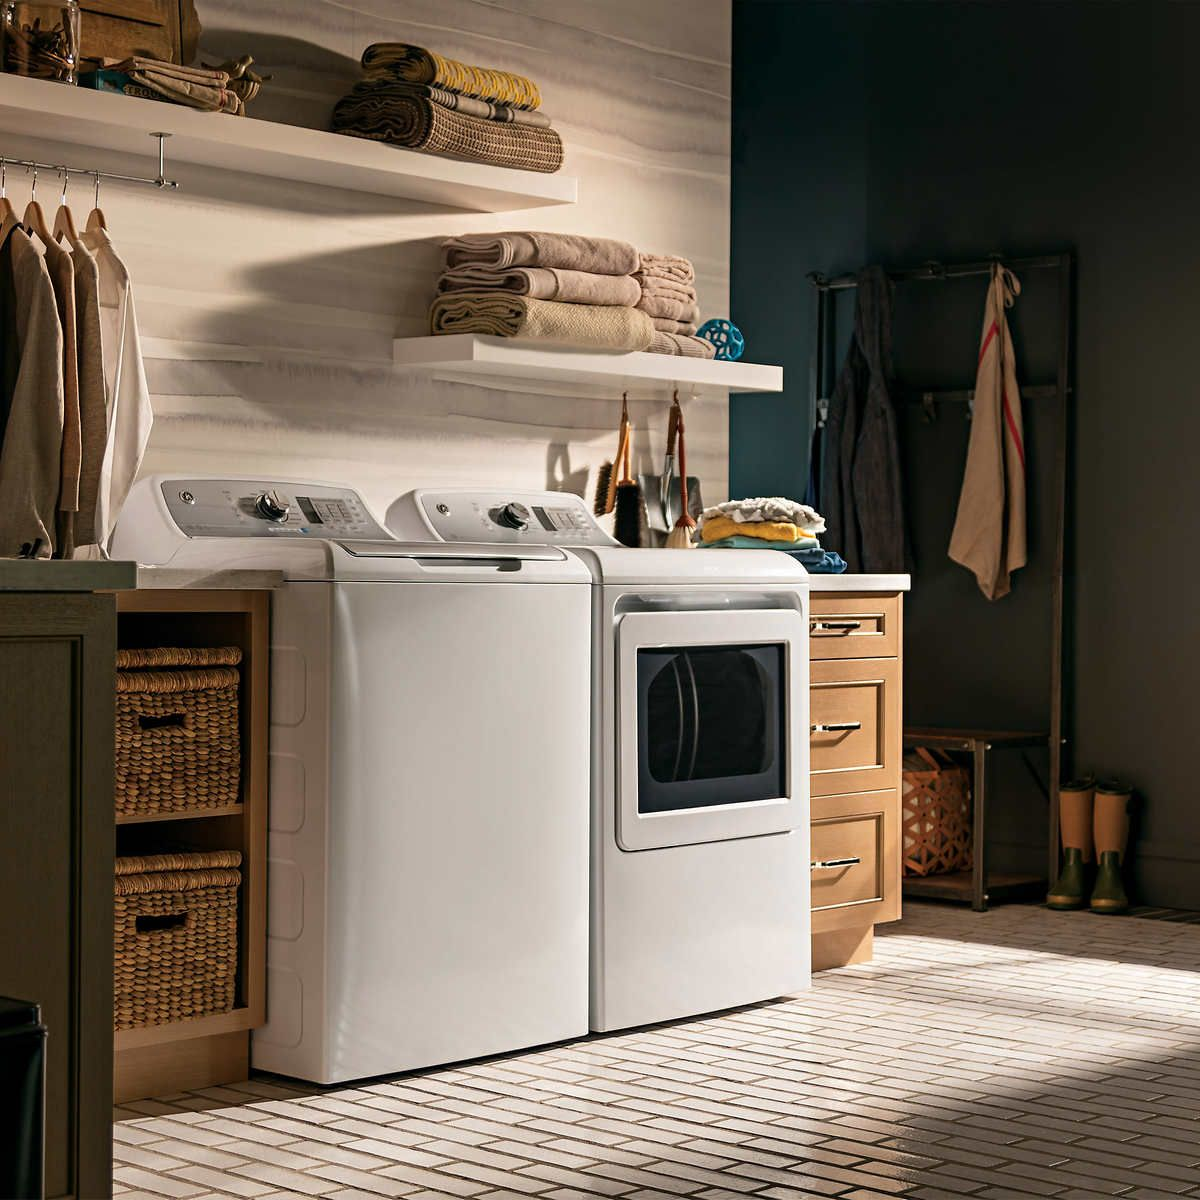 Pin by Jeff Couch on Home Laundry room appliances